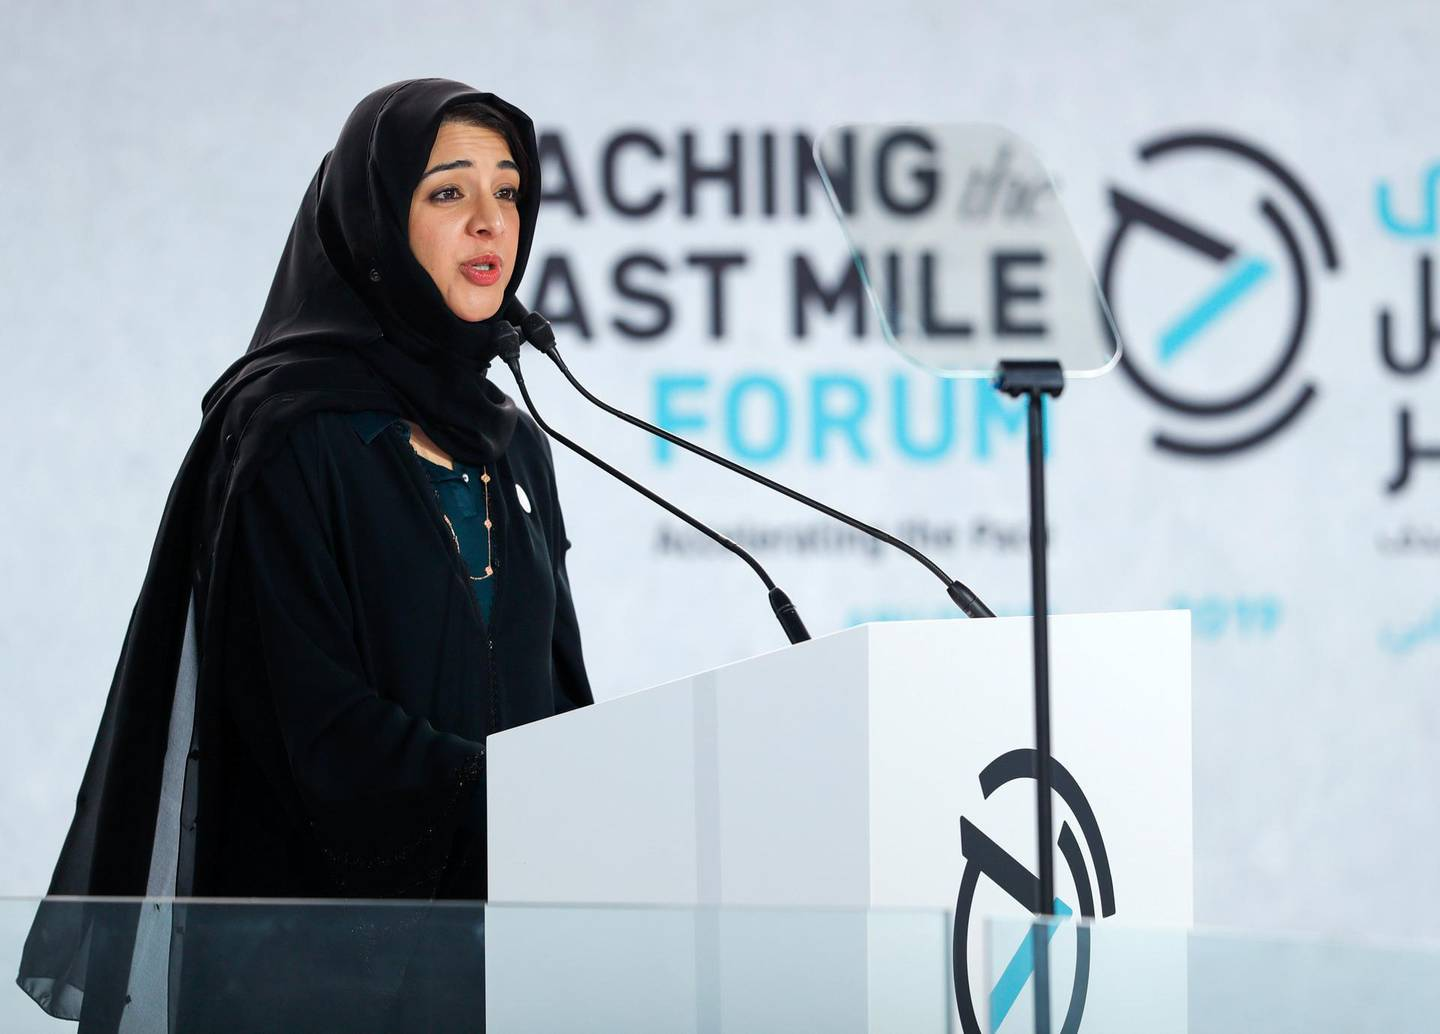 Abu Dhabi, United Arab Emirates, November 19 , 2019.  Reaching the Last Mile Forum.Her Excellency Reem Al Hashimy, Minister of State for International Cooperation.Victor Besa / The NationalSection:  NAReporter:  Dan Sanderson